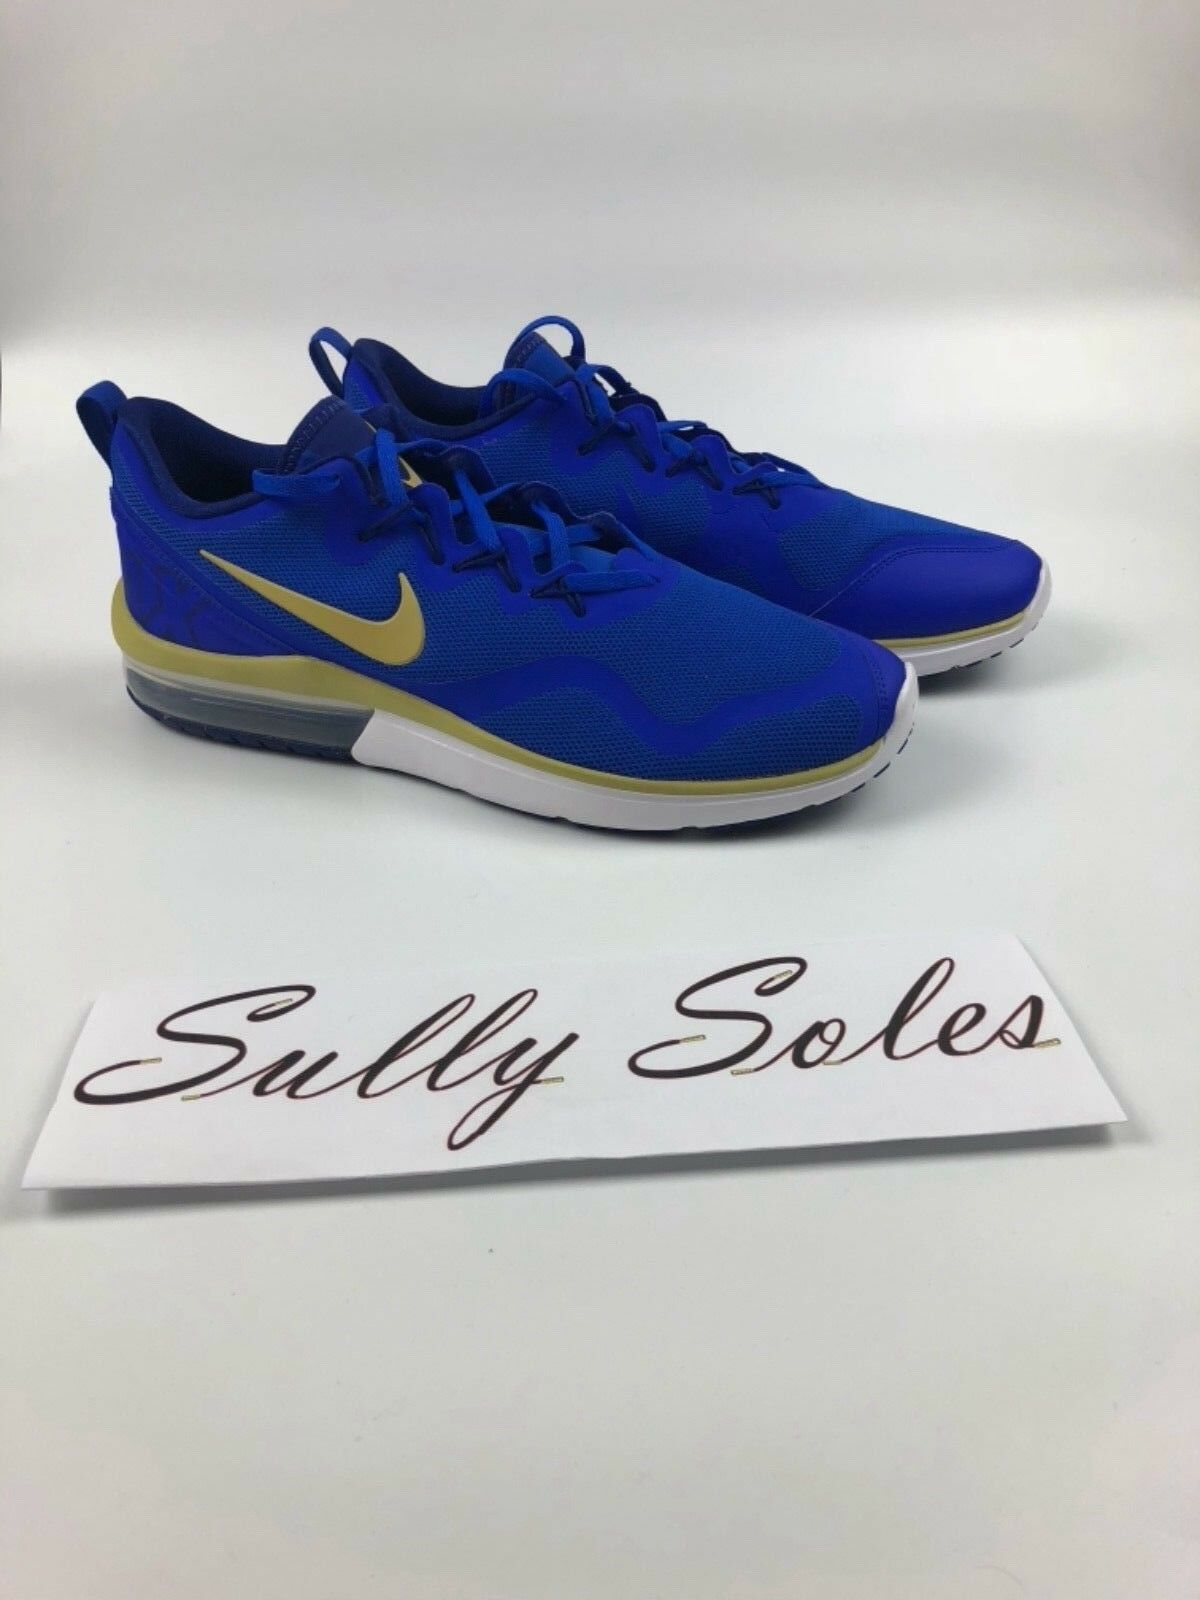 Men's Nike air max Fury Running shoes Multi size bluee gold white NEW